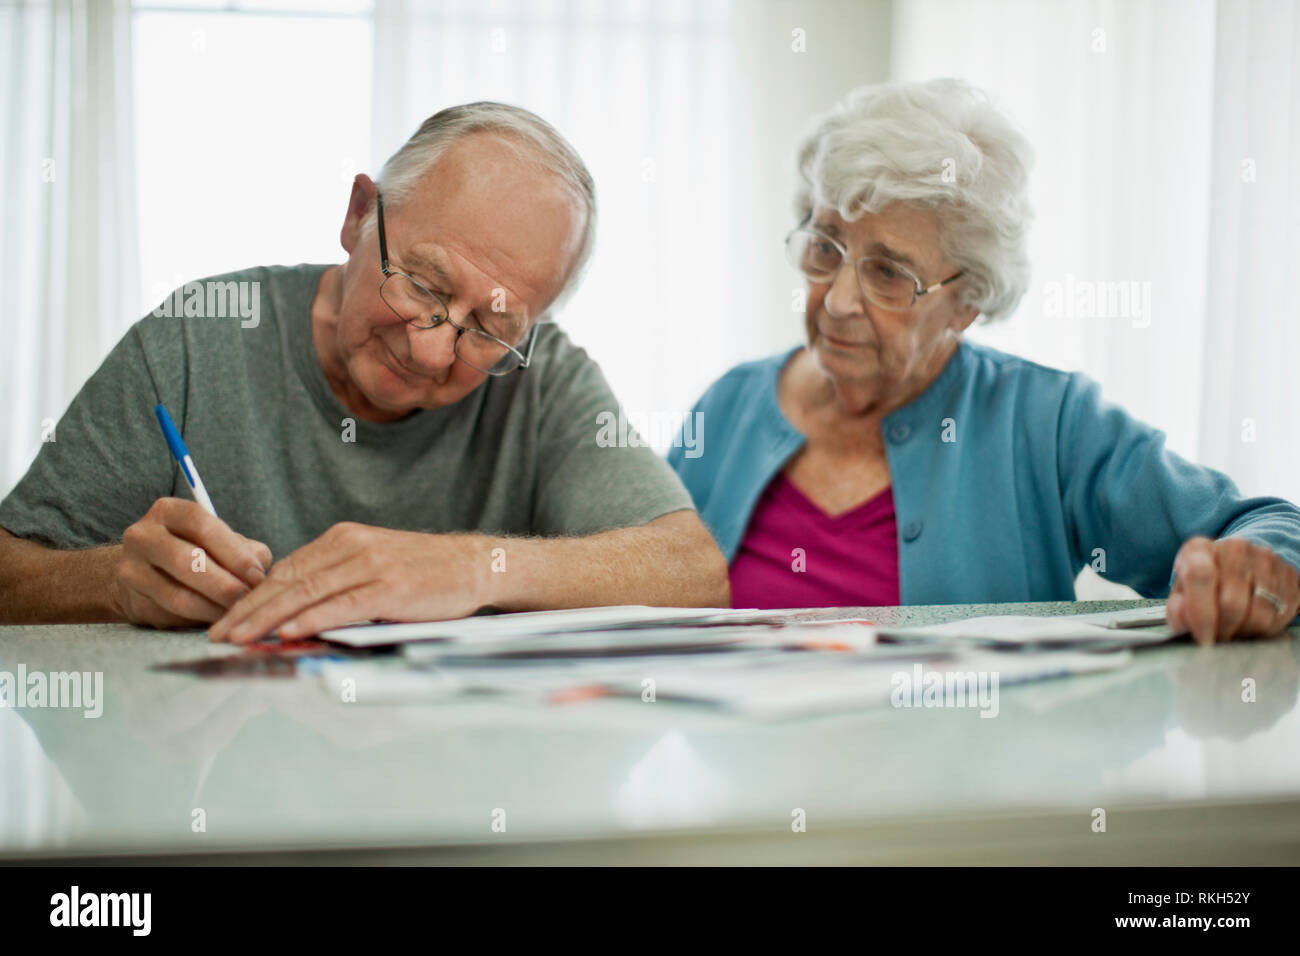 Anxious elderly couple sign some paperwork while they work through their big pile of bills. - Stock Image